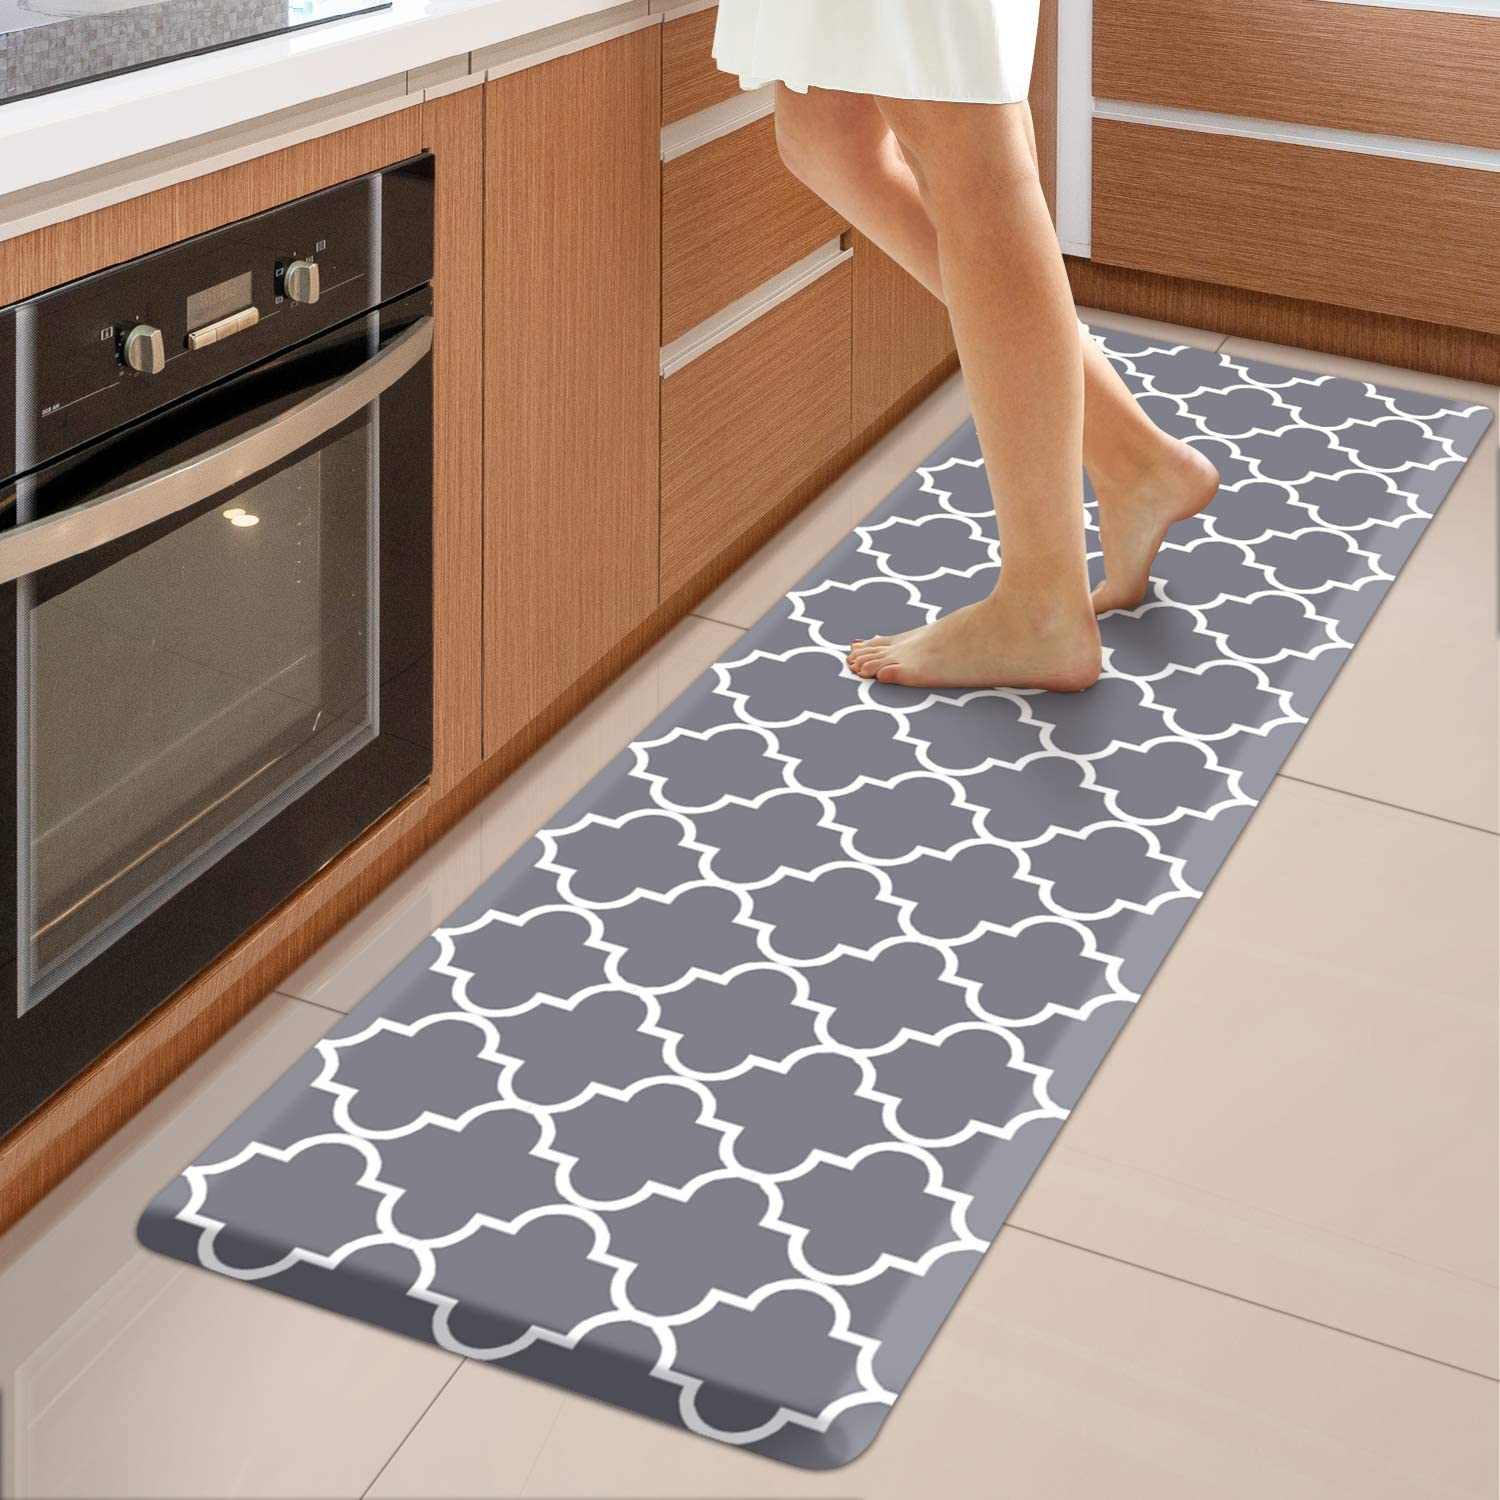 Wiselife Kitchen Mat Cushioned Anti Fatigue Kitchen Rug 17 3 X 60 Non Slip Waterproof Kitchen Mats And Rugs Heavy Duty Pvc Ergonomic Comfort Mat For Kitchen Floor Home Office Sink Laundry Grey Walmart Com